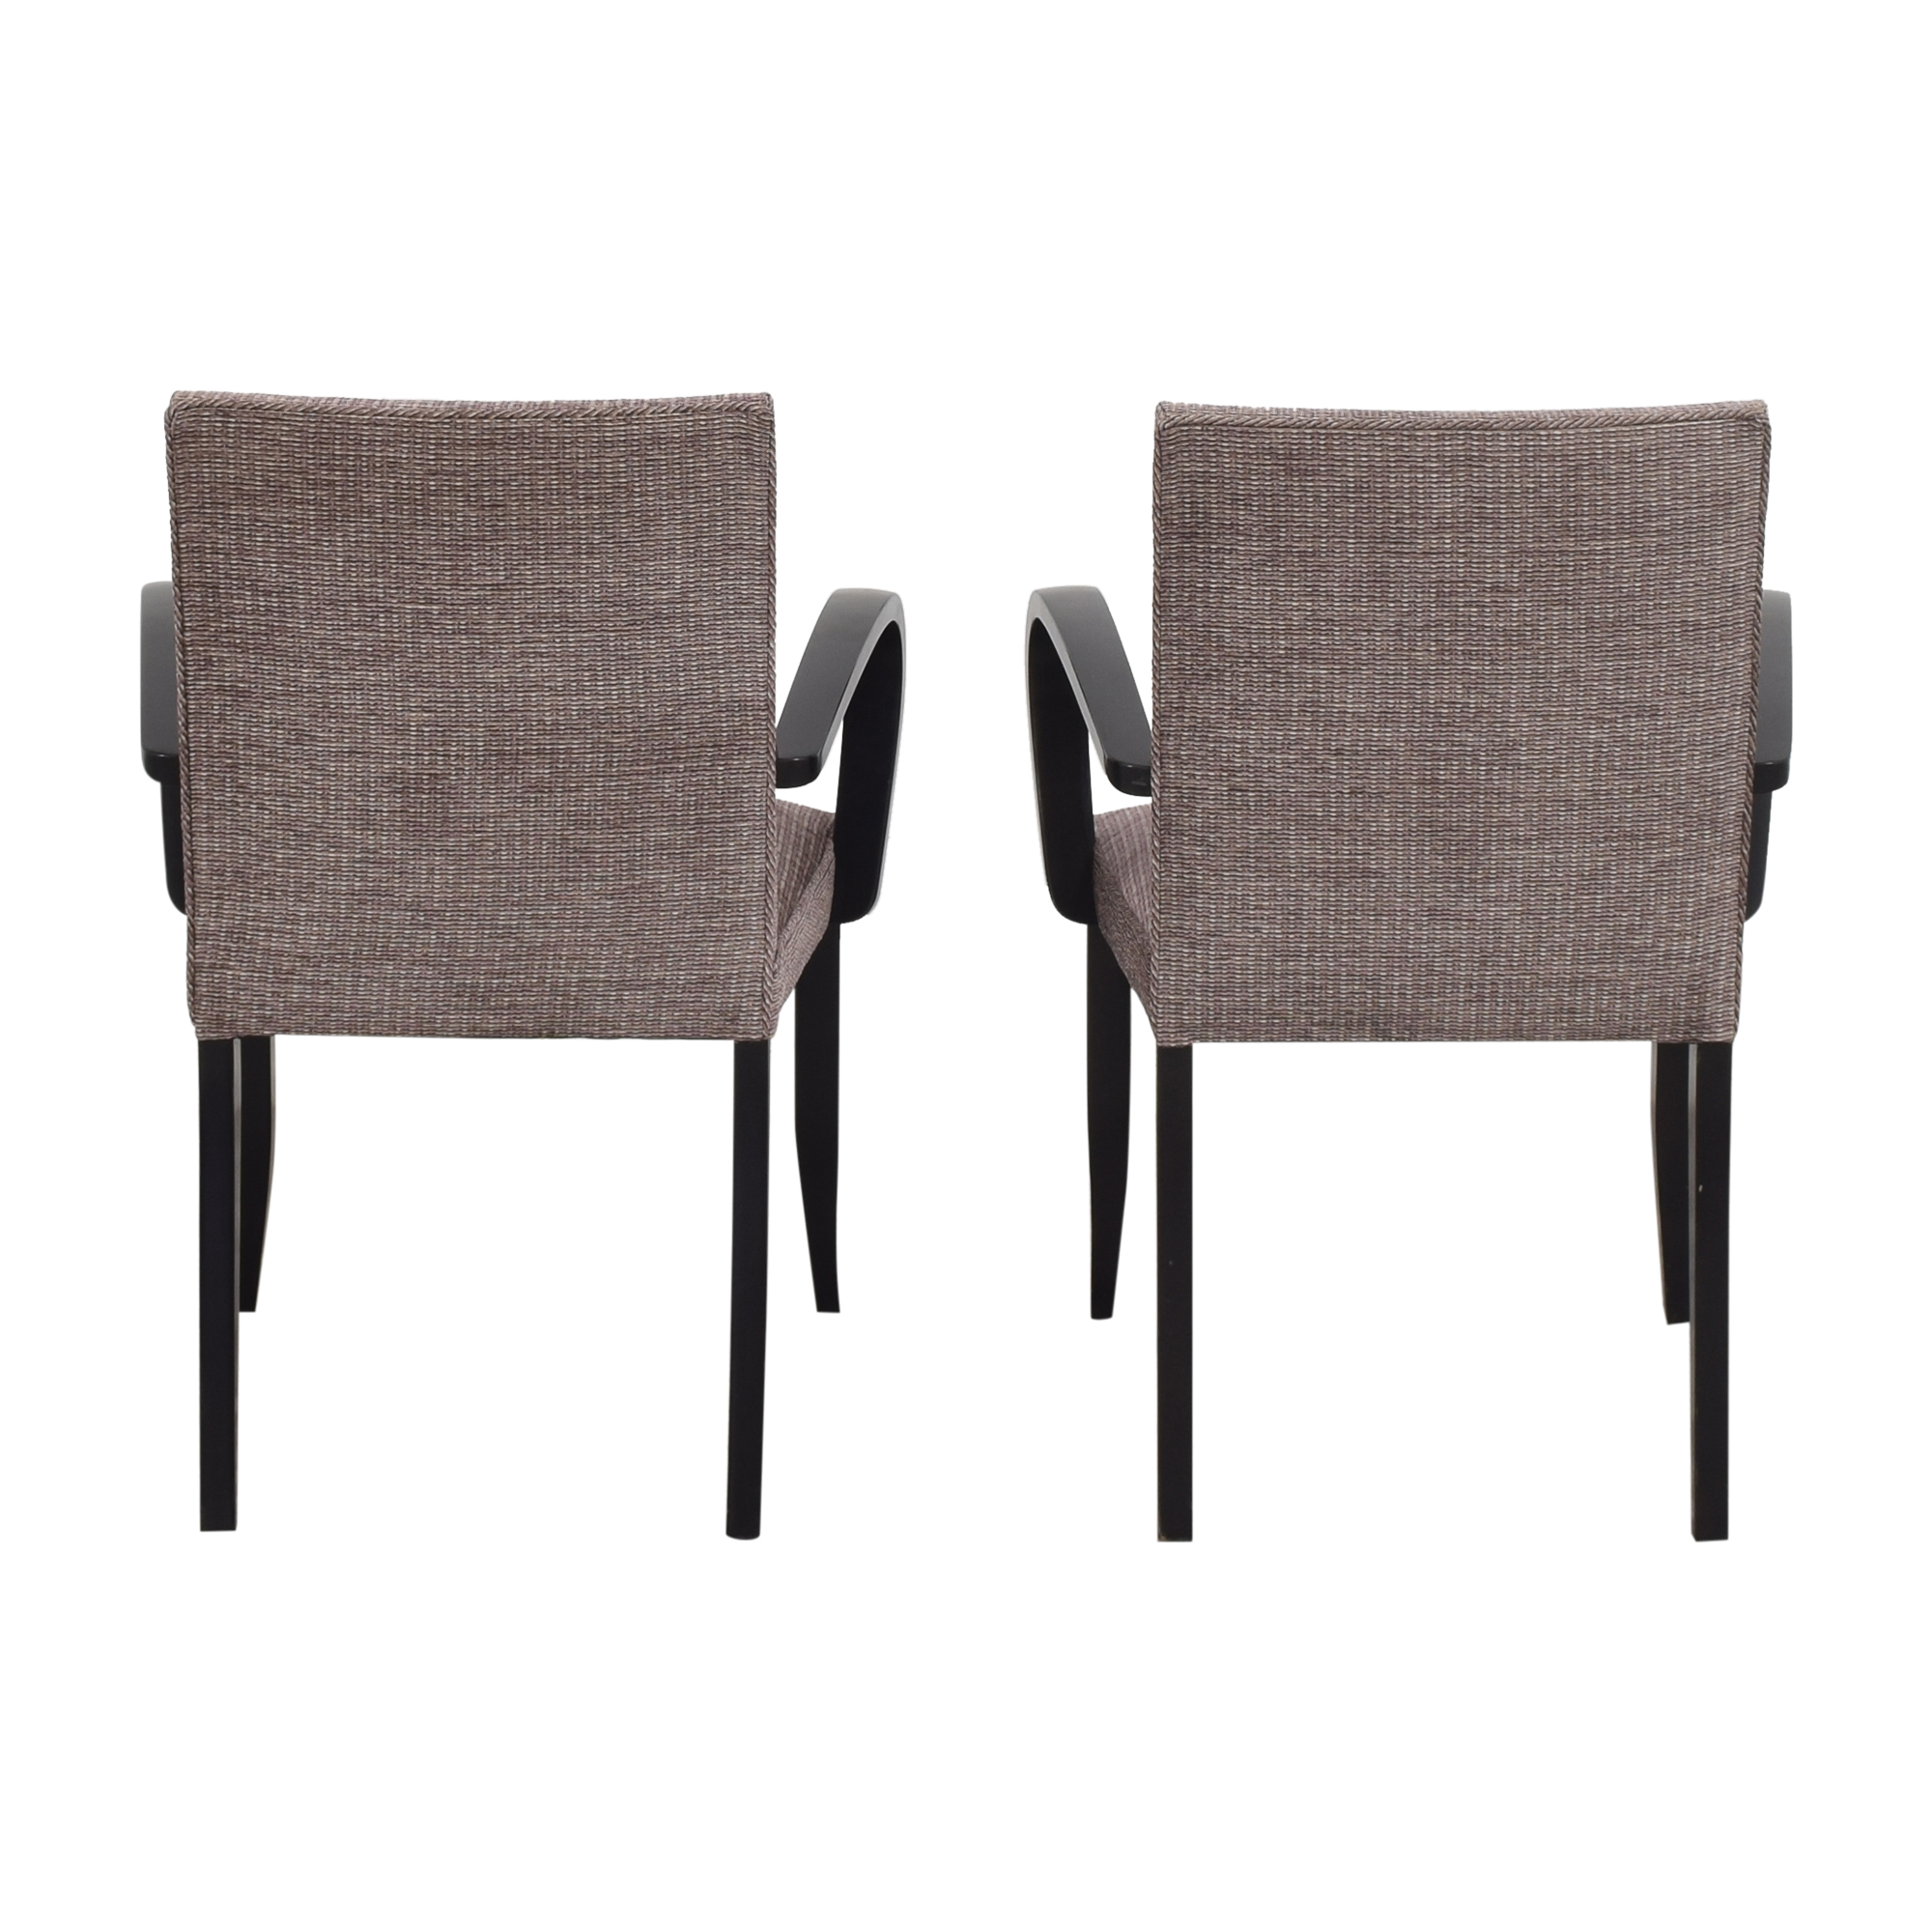 Office Arm Chairs nj